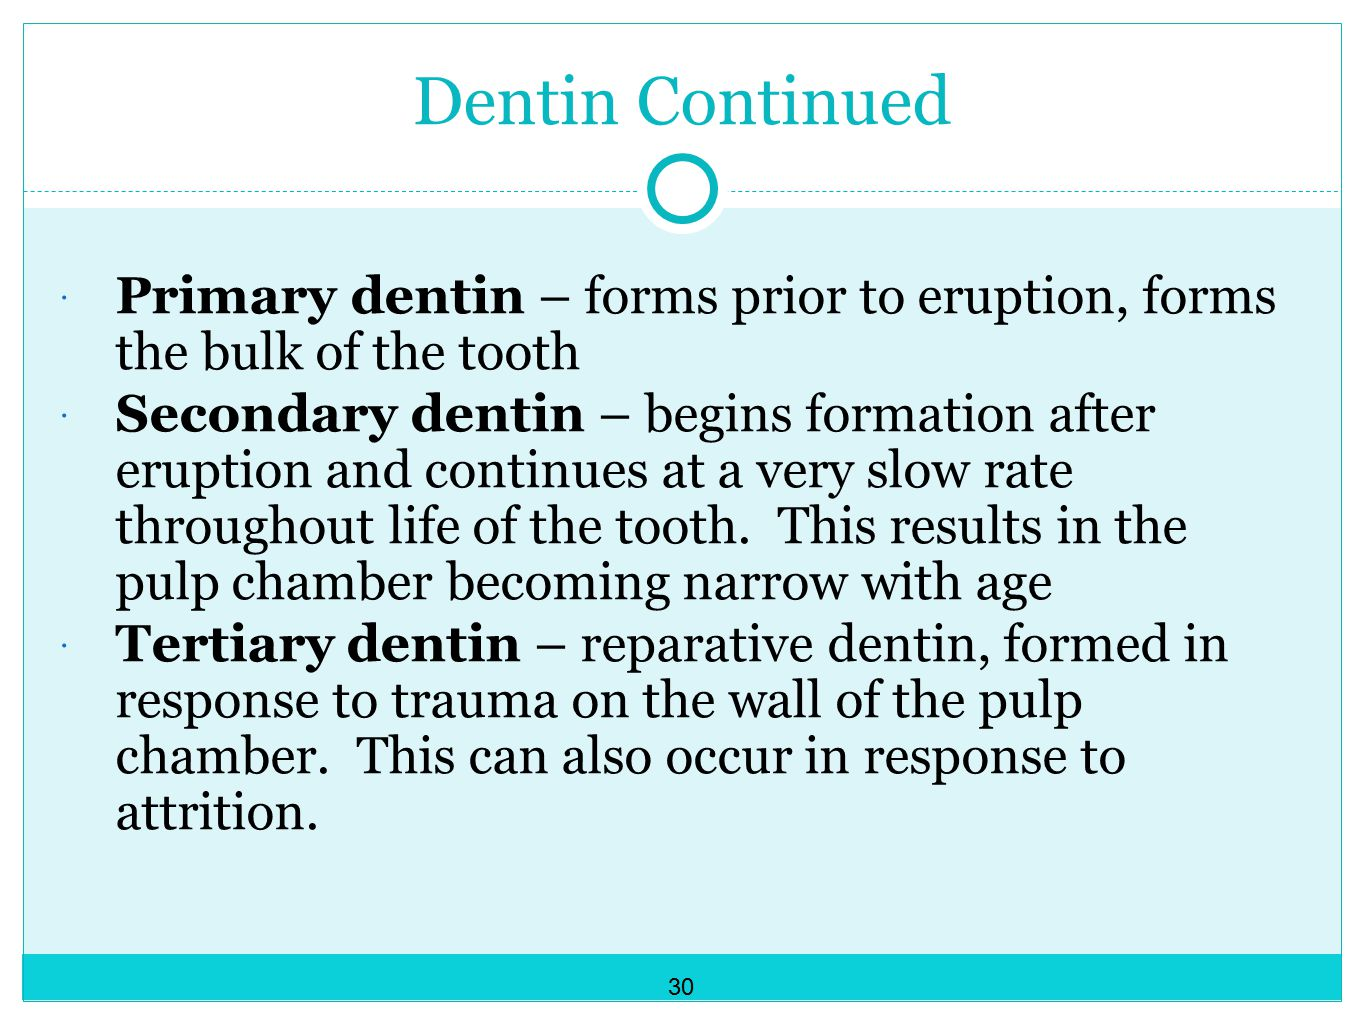 Dentin Continued  Primary dentin – forms prior to eruption, forms the bulk of the tooth  Secondary dentin – begins formation after eruption and continues at a very slow rate throughout life of the tooth.